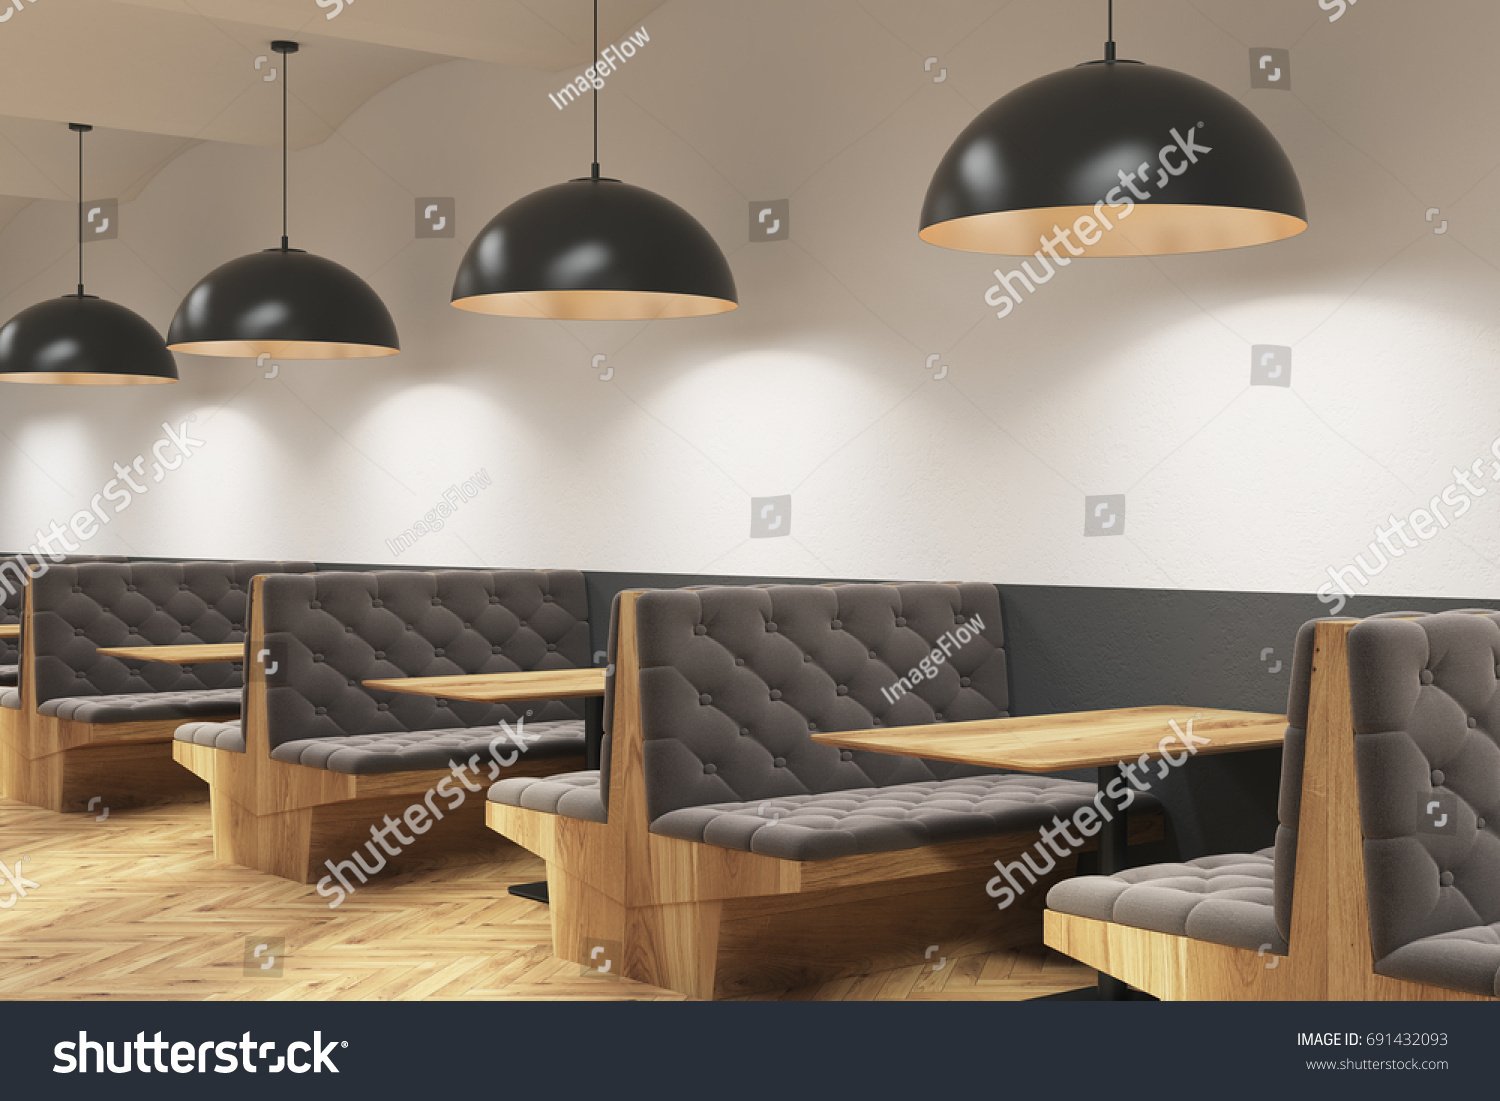 gray cafe interior with soft sofas and wooden tables white and gray walls wooden - Gray Cafe Interior